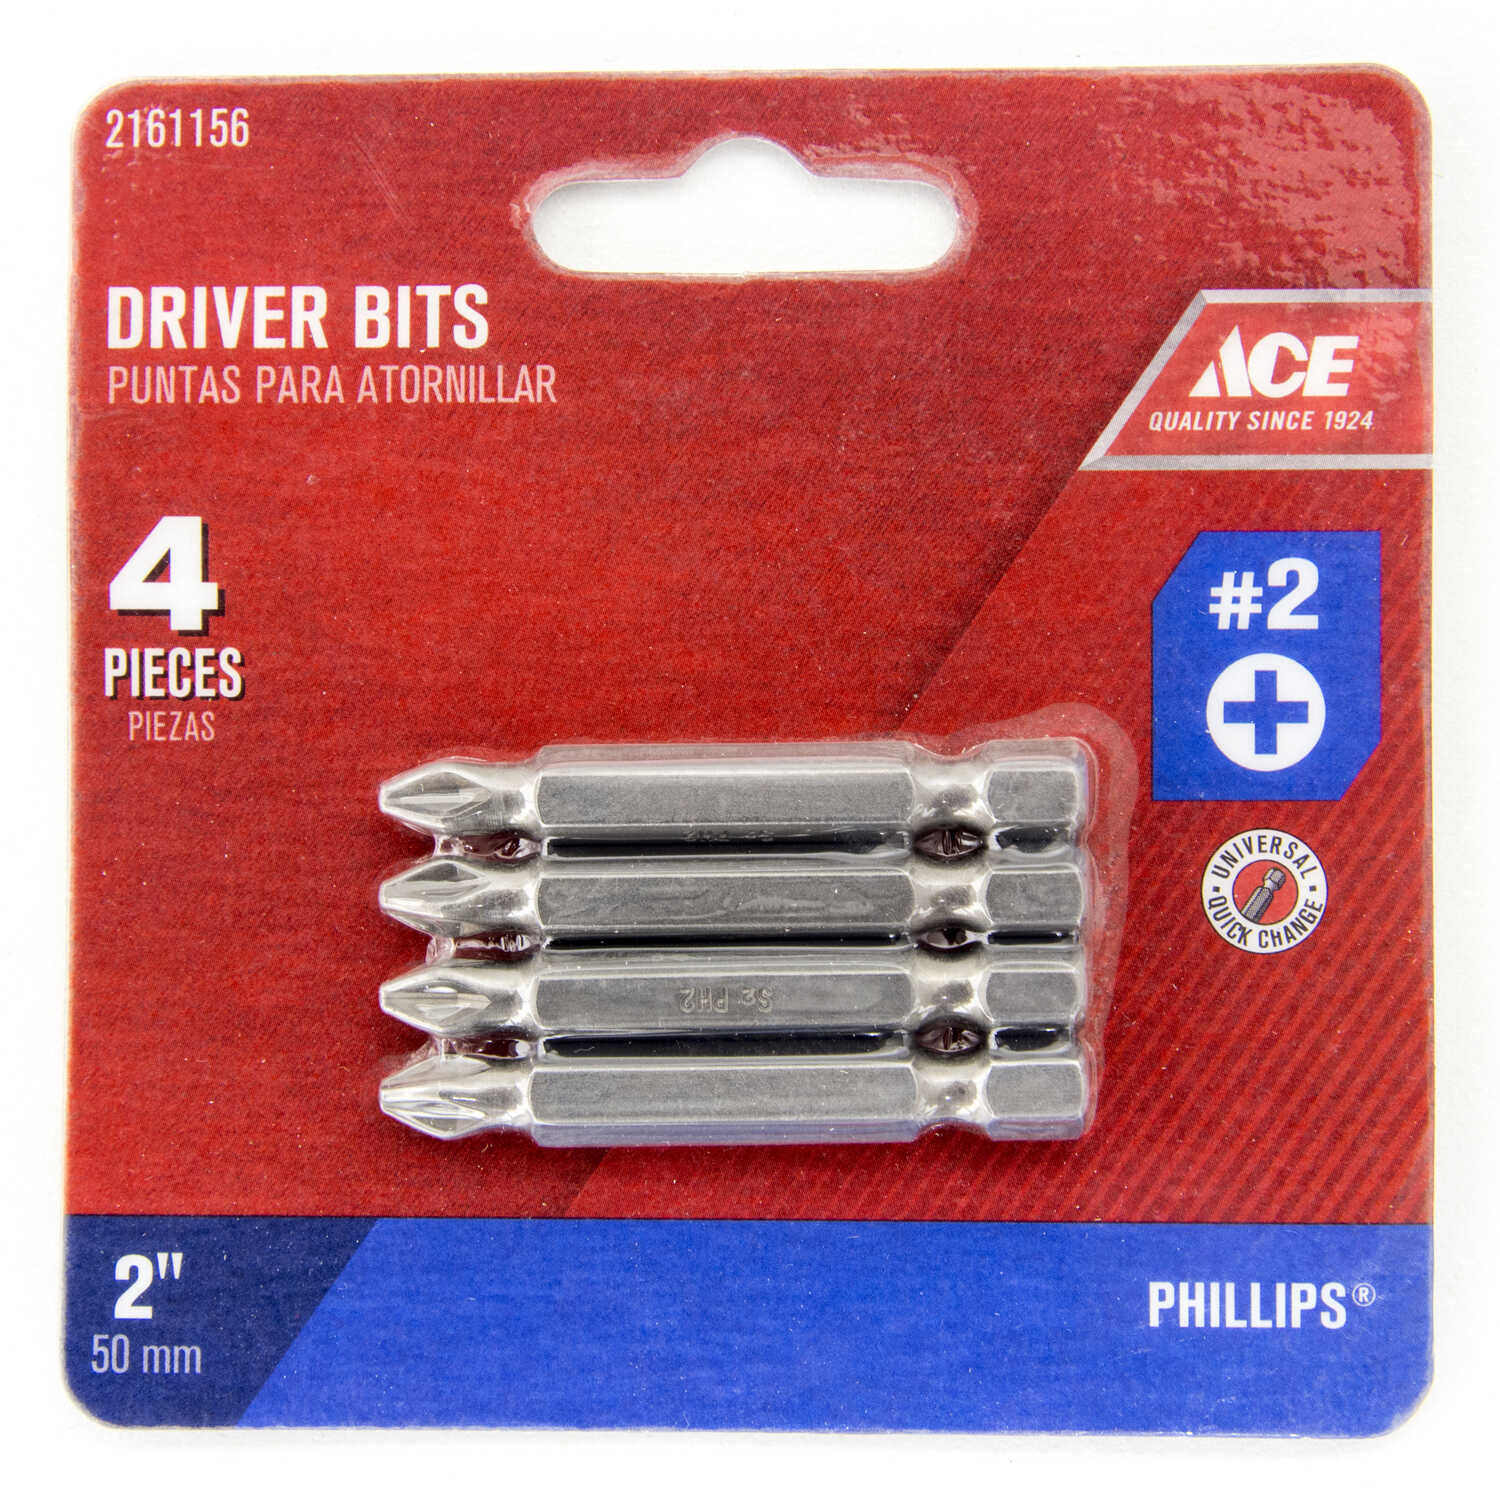 Ace  Phillips  2   x 2 in. L 1/4 in. Quick-Change Hex Shank  4 pc. S2 Tool Steel  Power Screwdriver